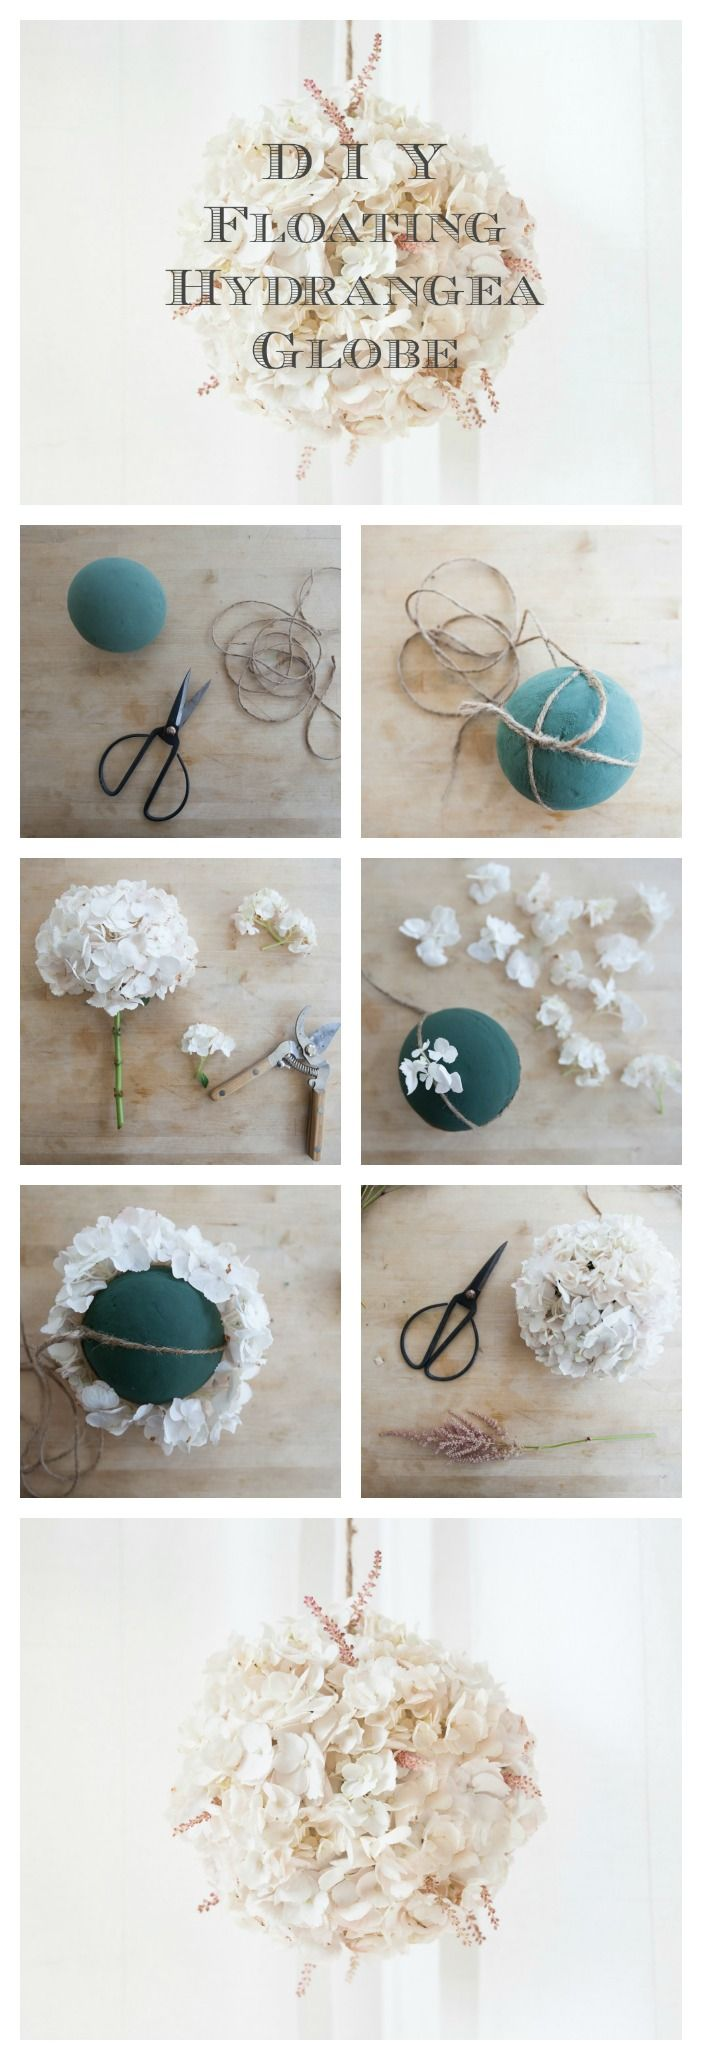 DIY Floating Hydrangea globes...with Navy blue ribbon